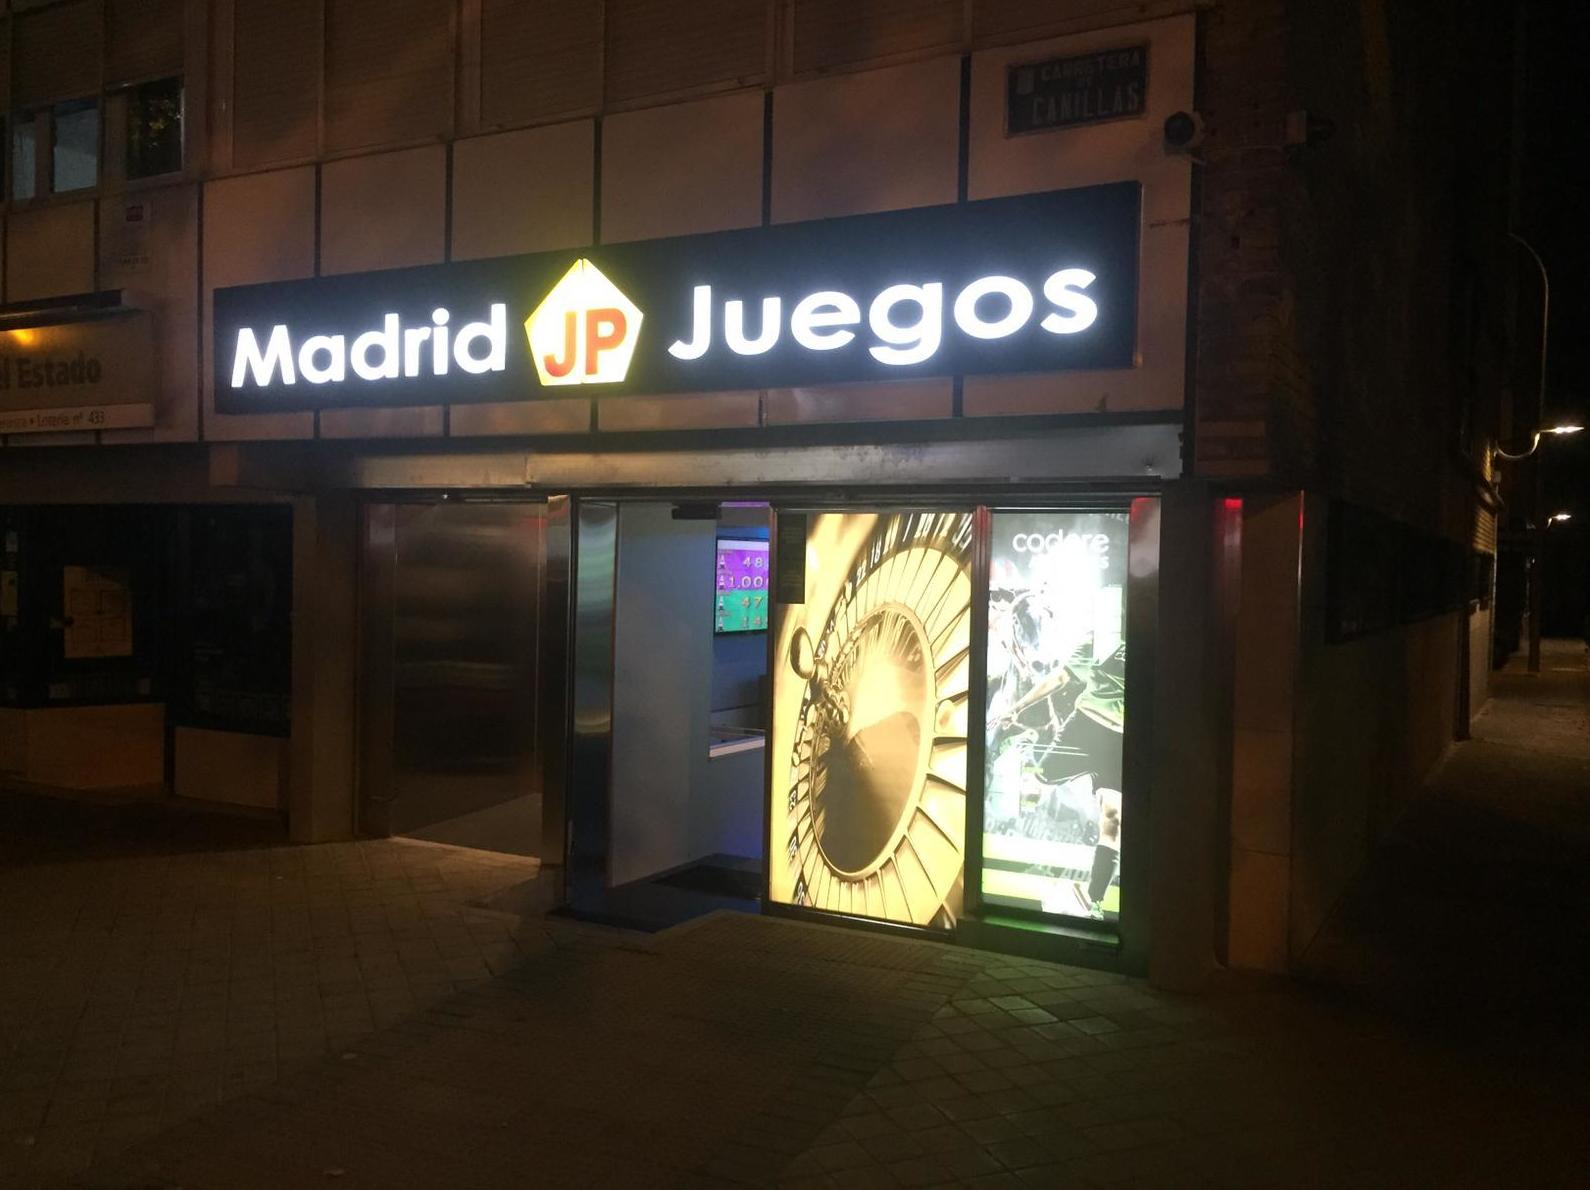 Rótulo luminoso con iluminación led en Madrid